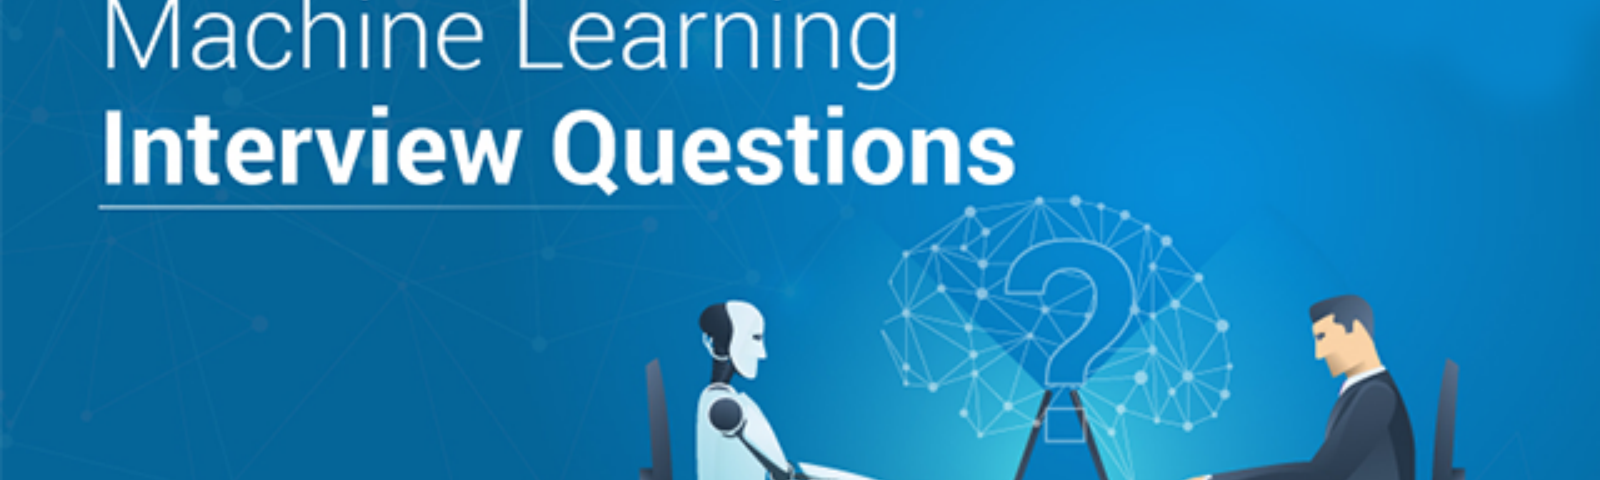 Top Machine Learning Interview Questions & Answers for 2020